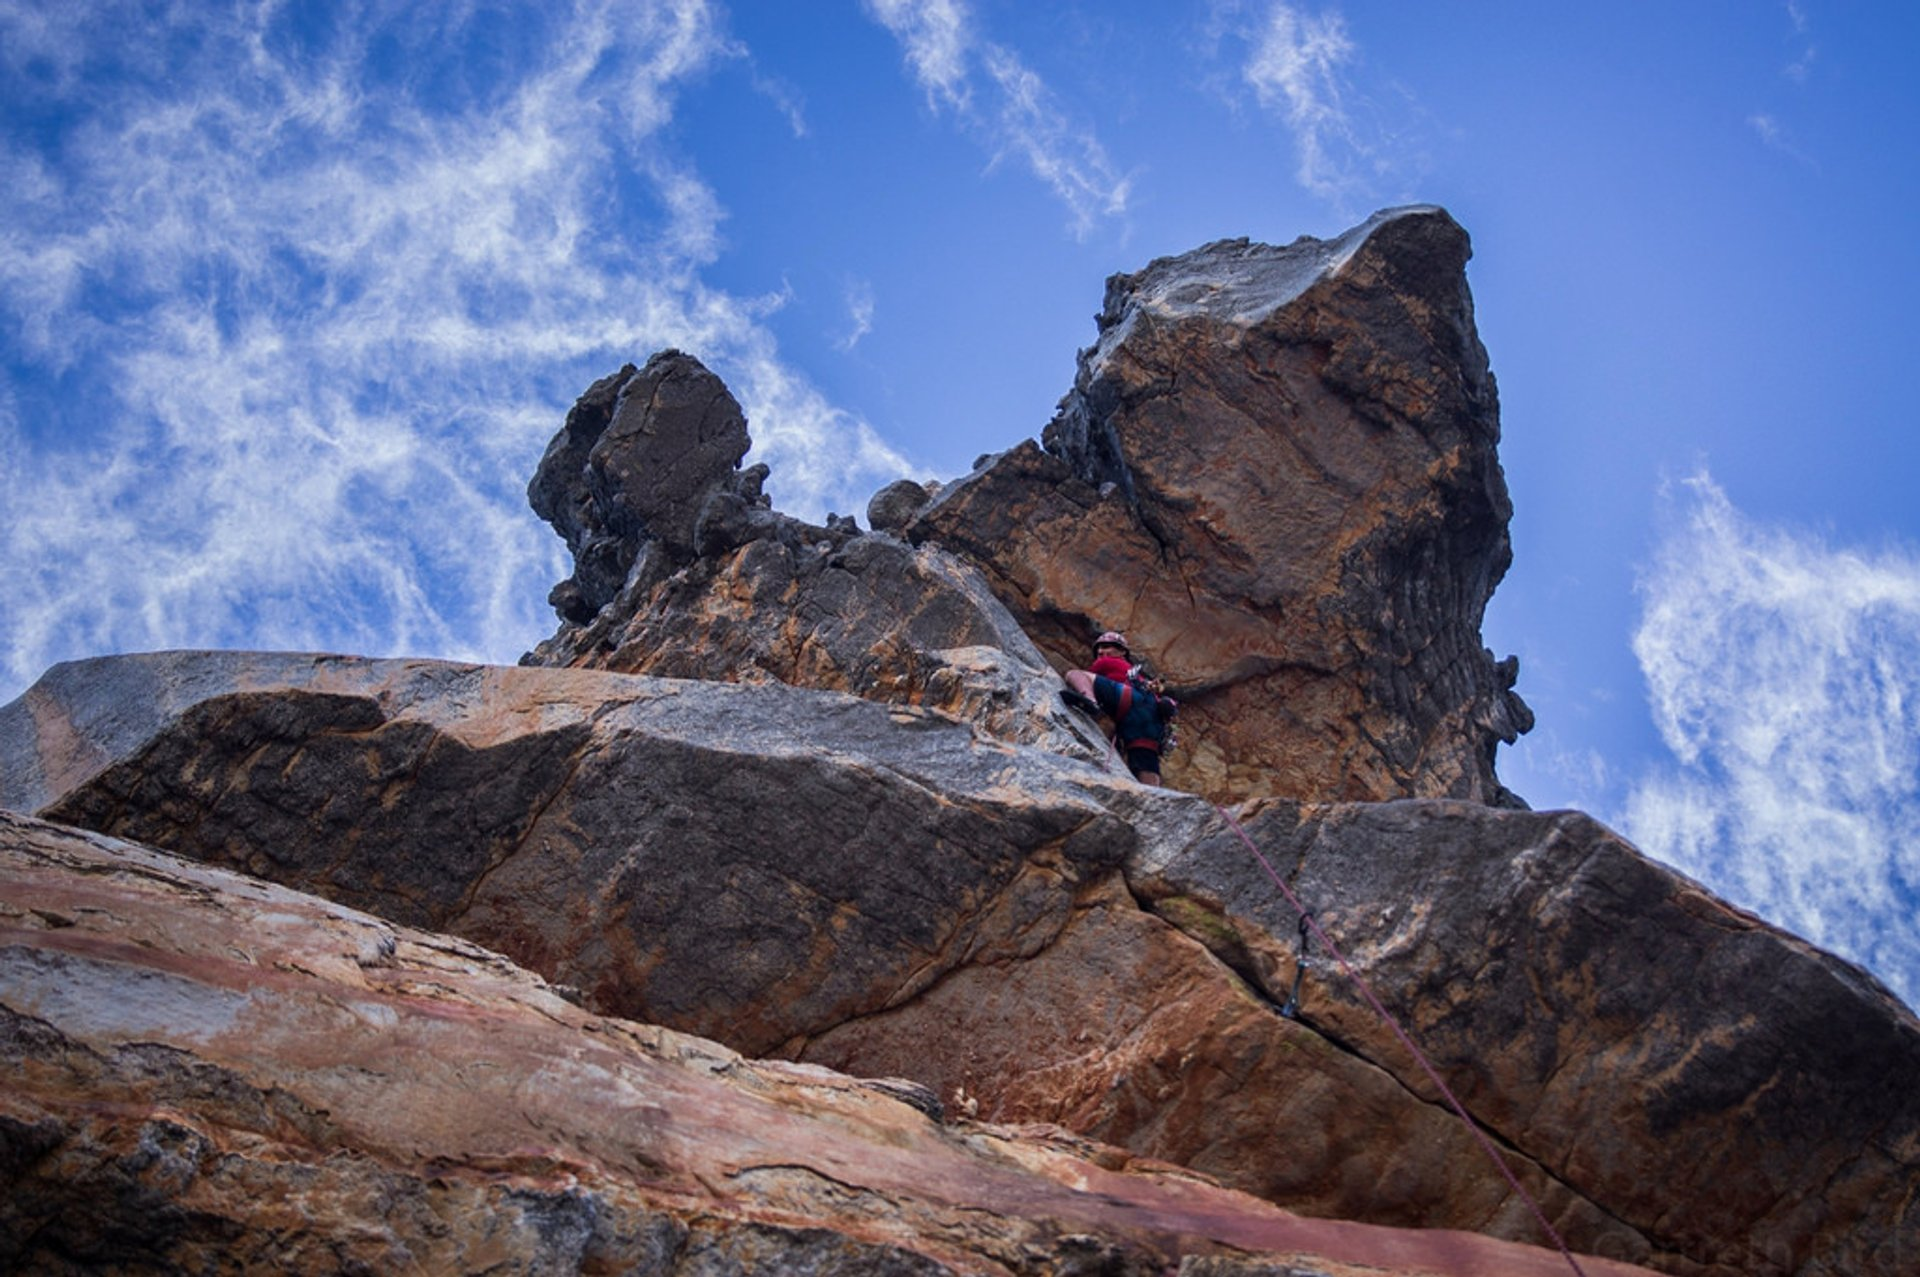 Rock Climbing in South Africa - Best Season 2020